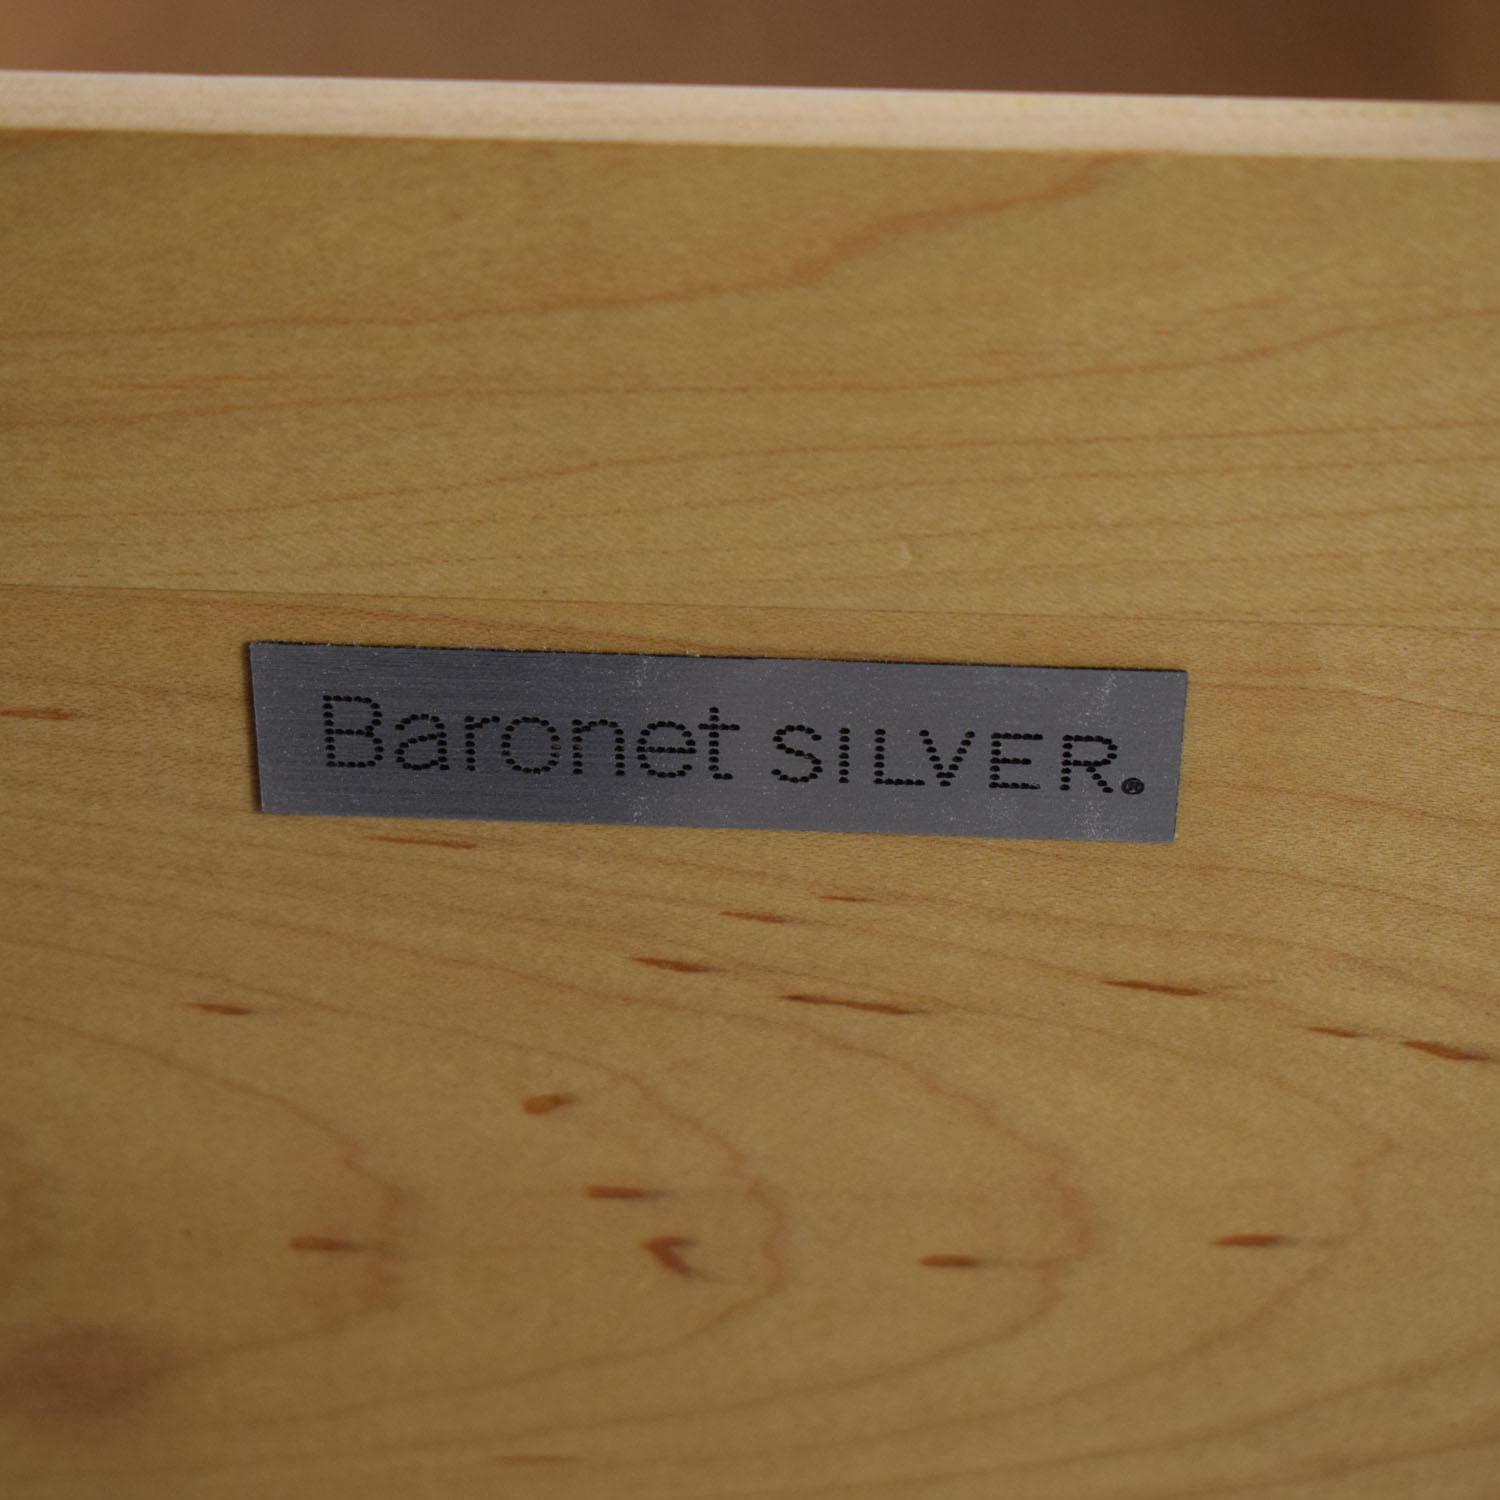 Baronet Baronet Silver Media Unit dimensions